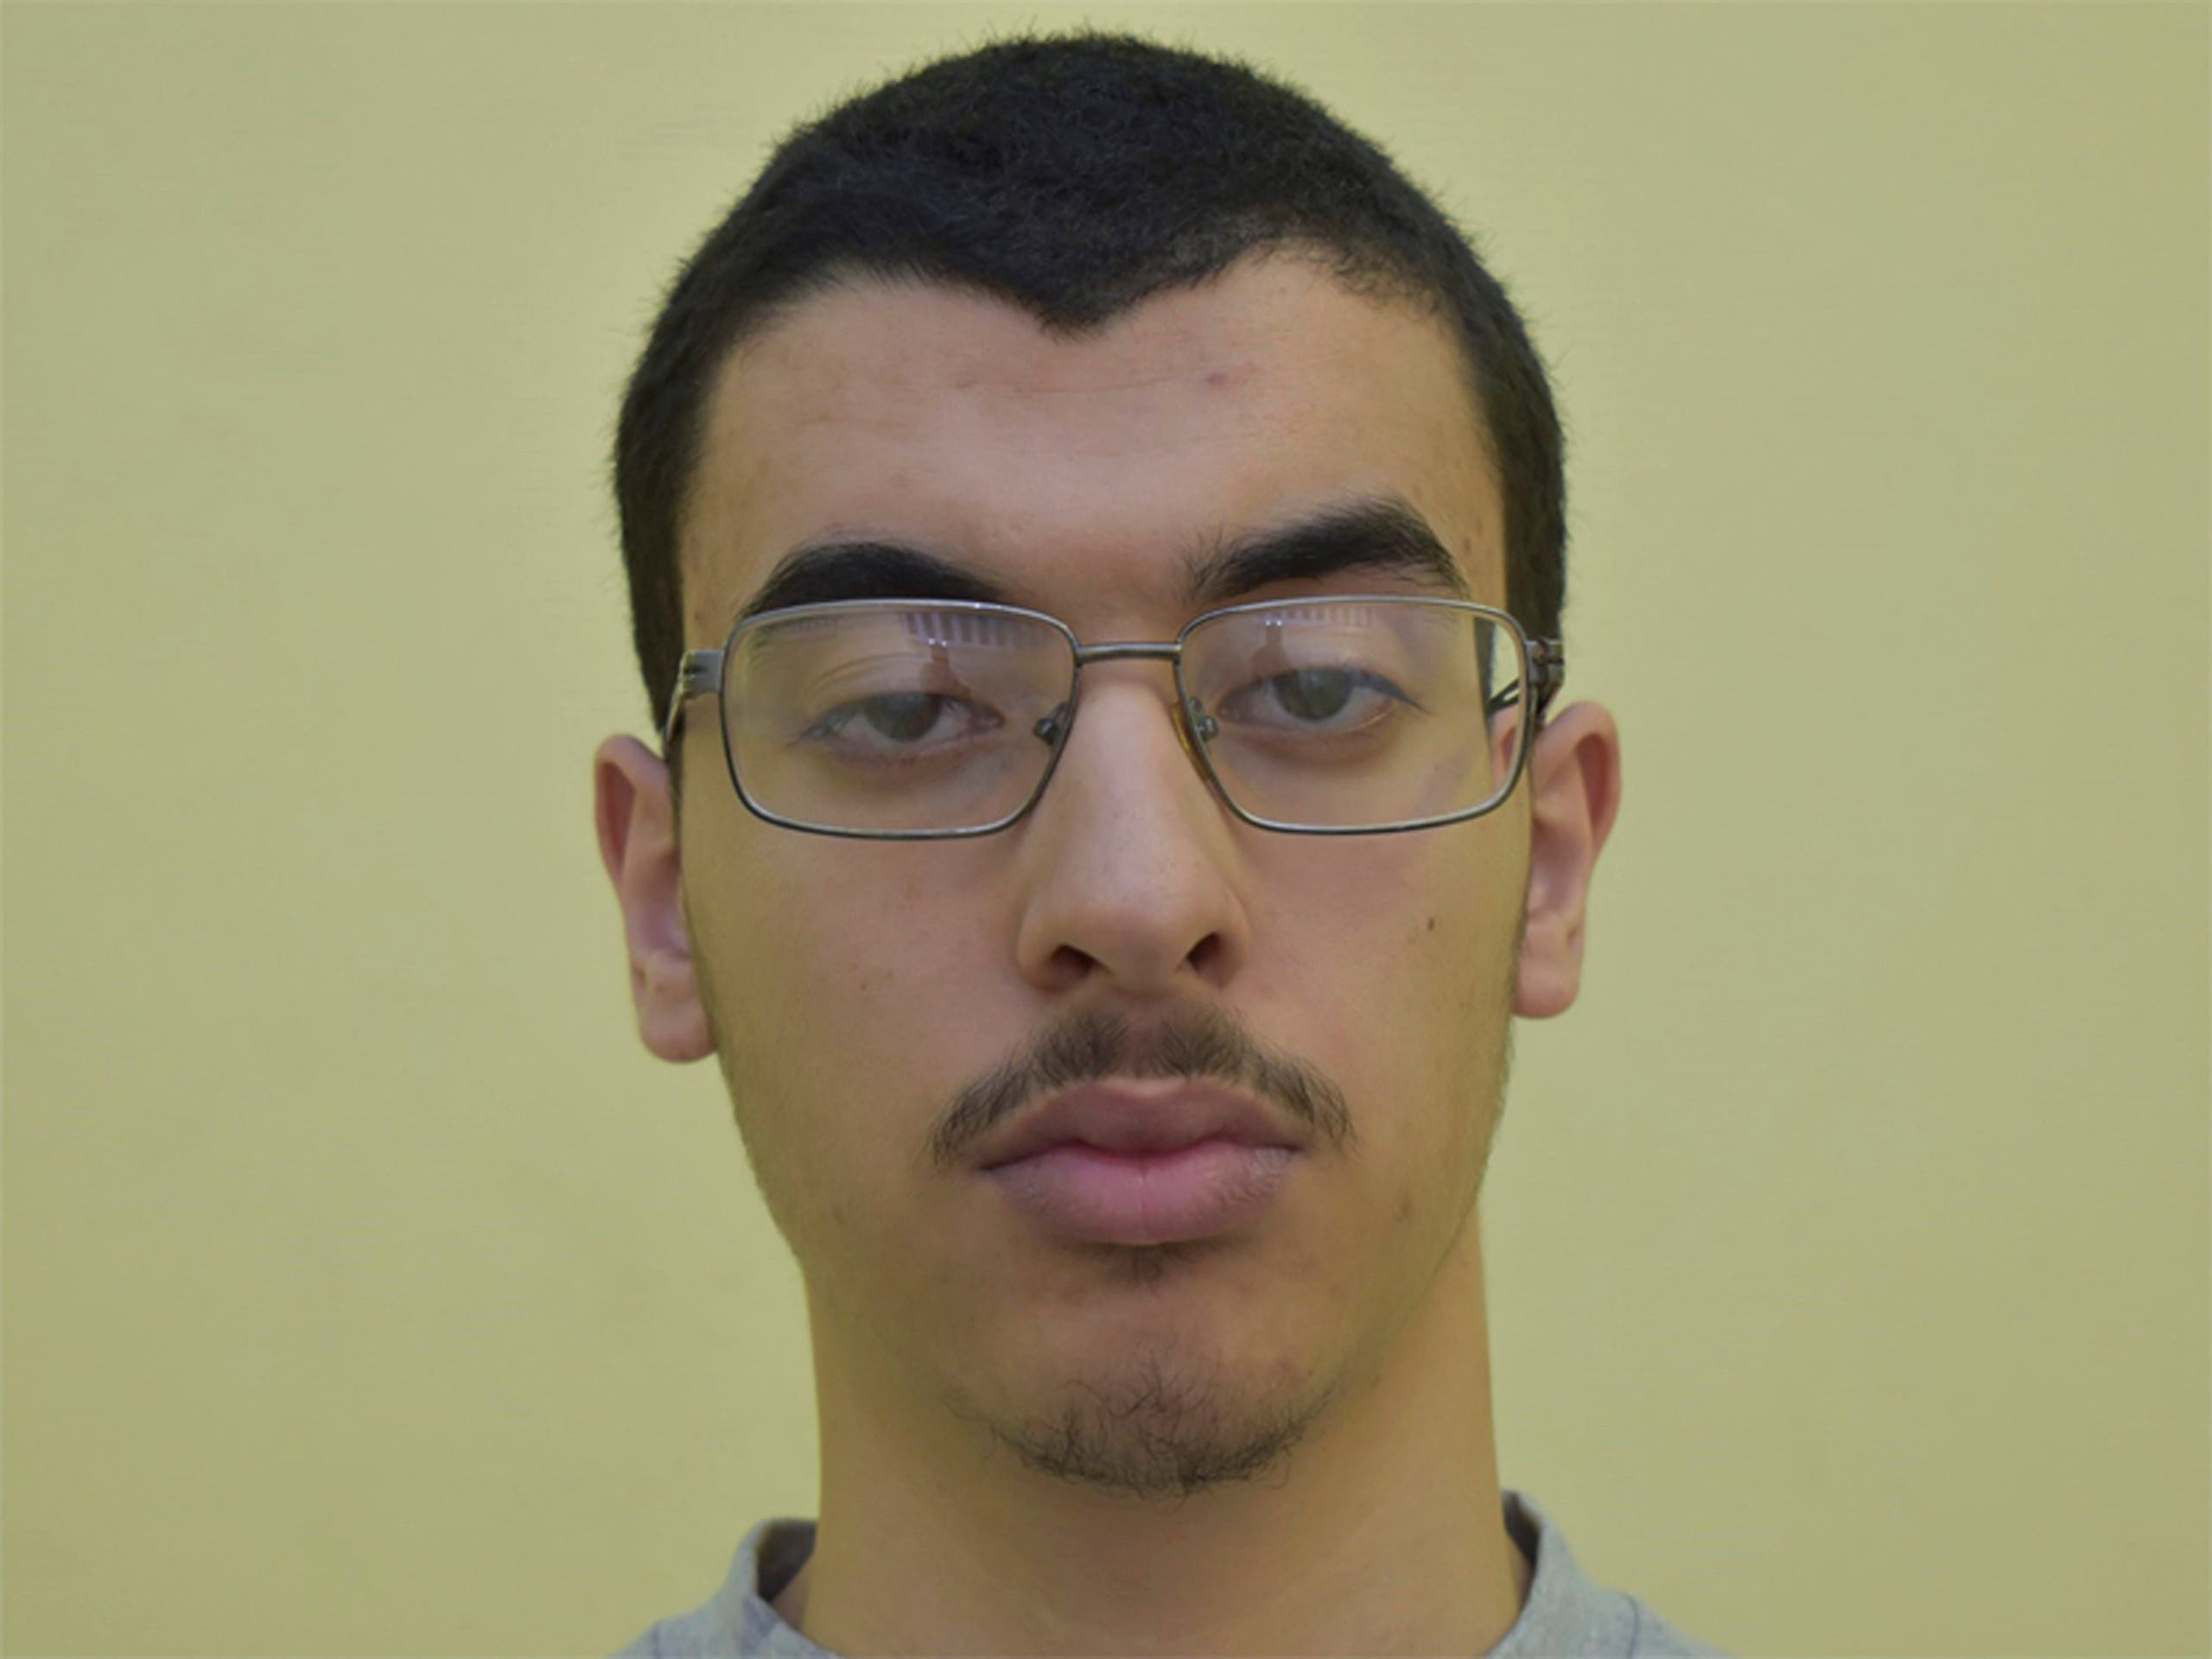 Undated file photo issued by Greater Manchester Police, of Hashem Abedi. (Greater Manchester Police via The Associated Press)